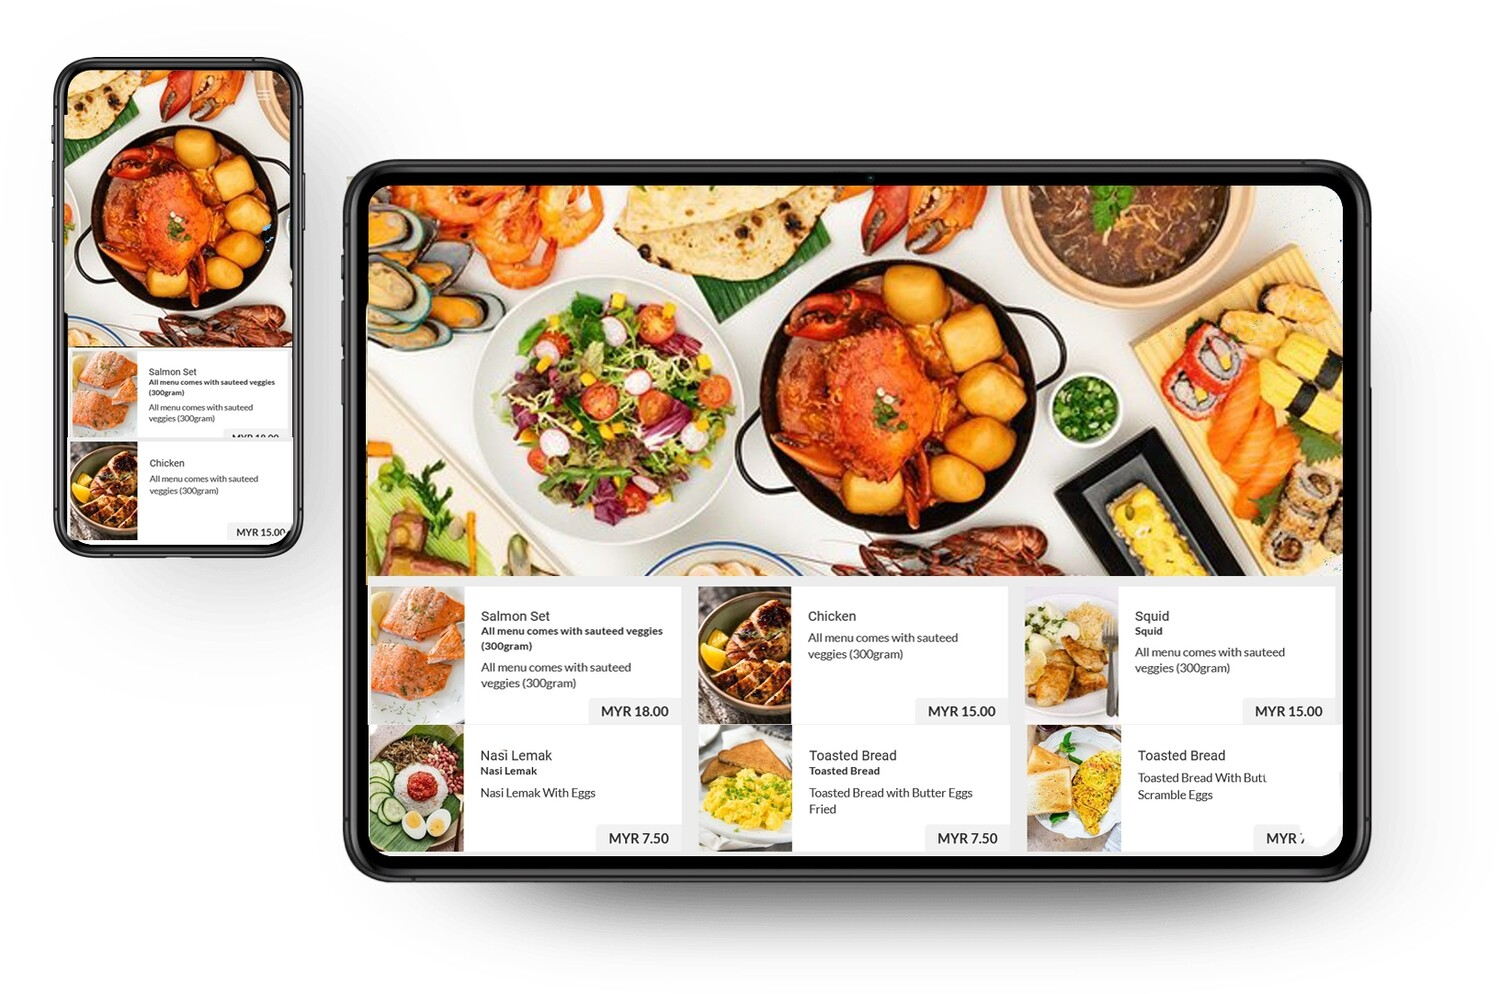 24-7 Risto Online Food Ordering System